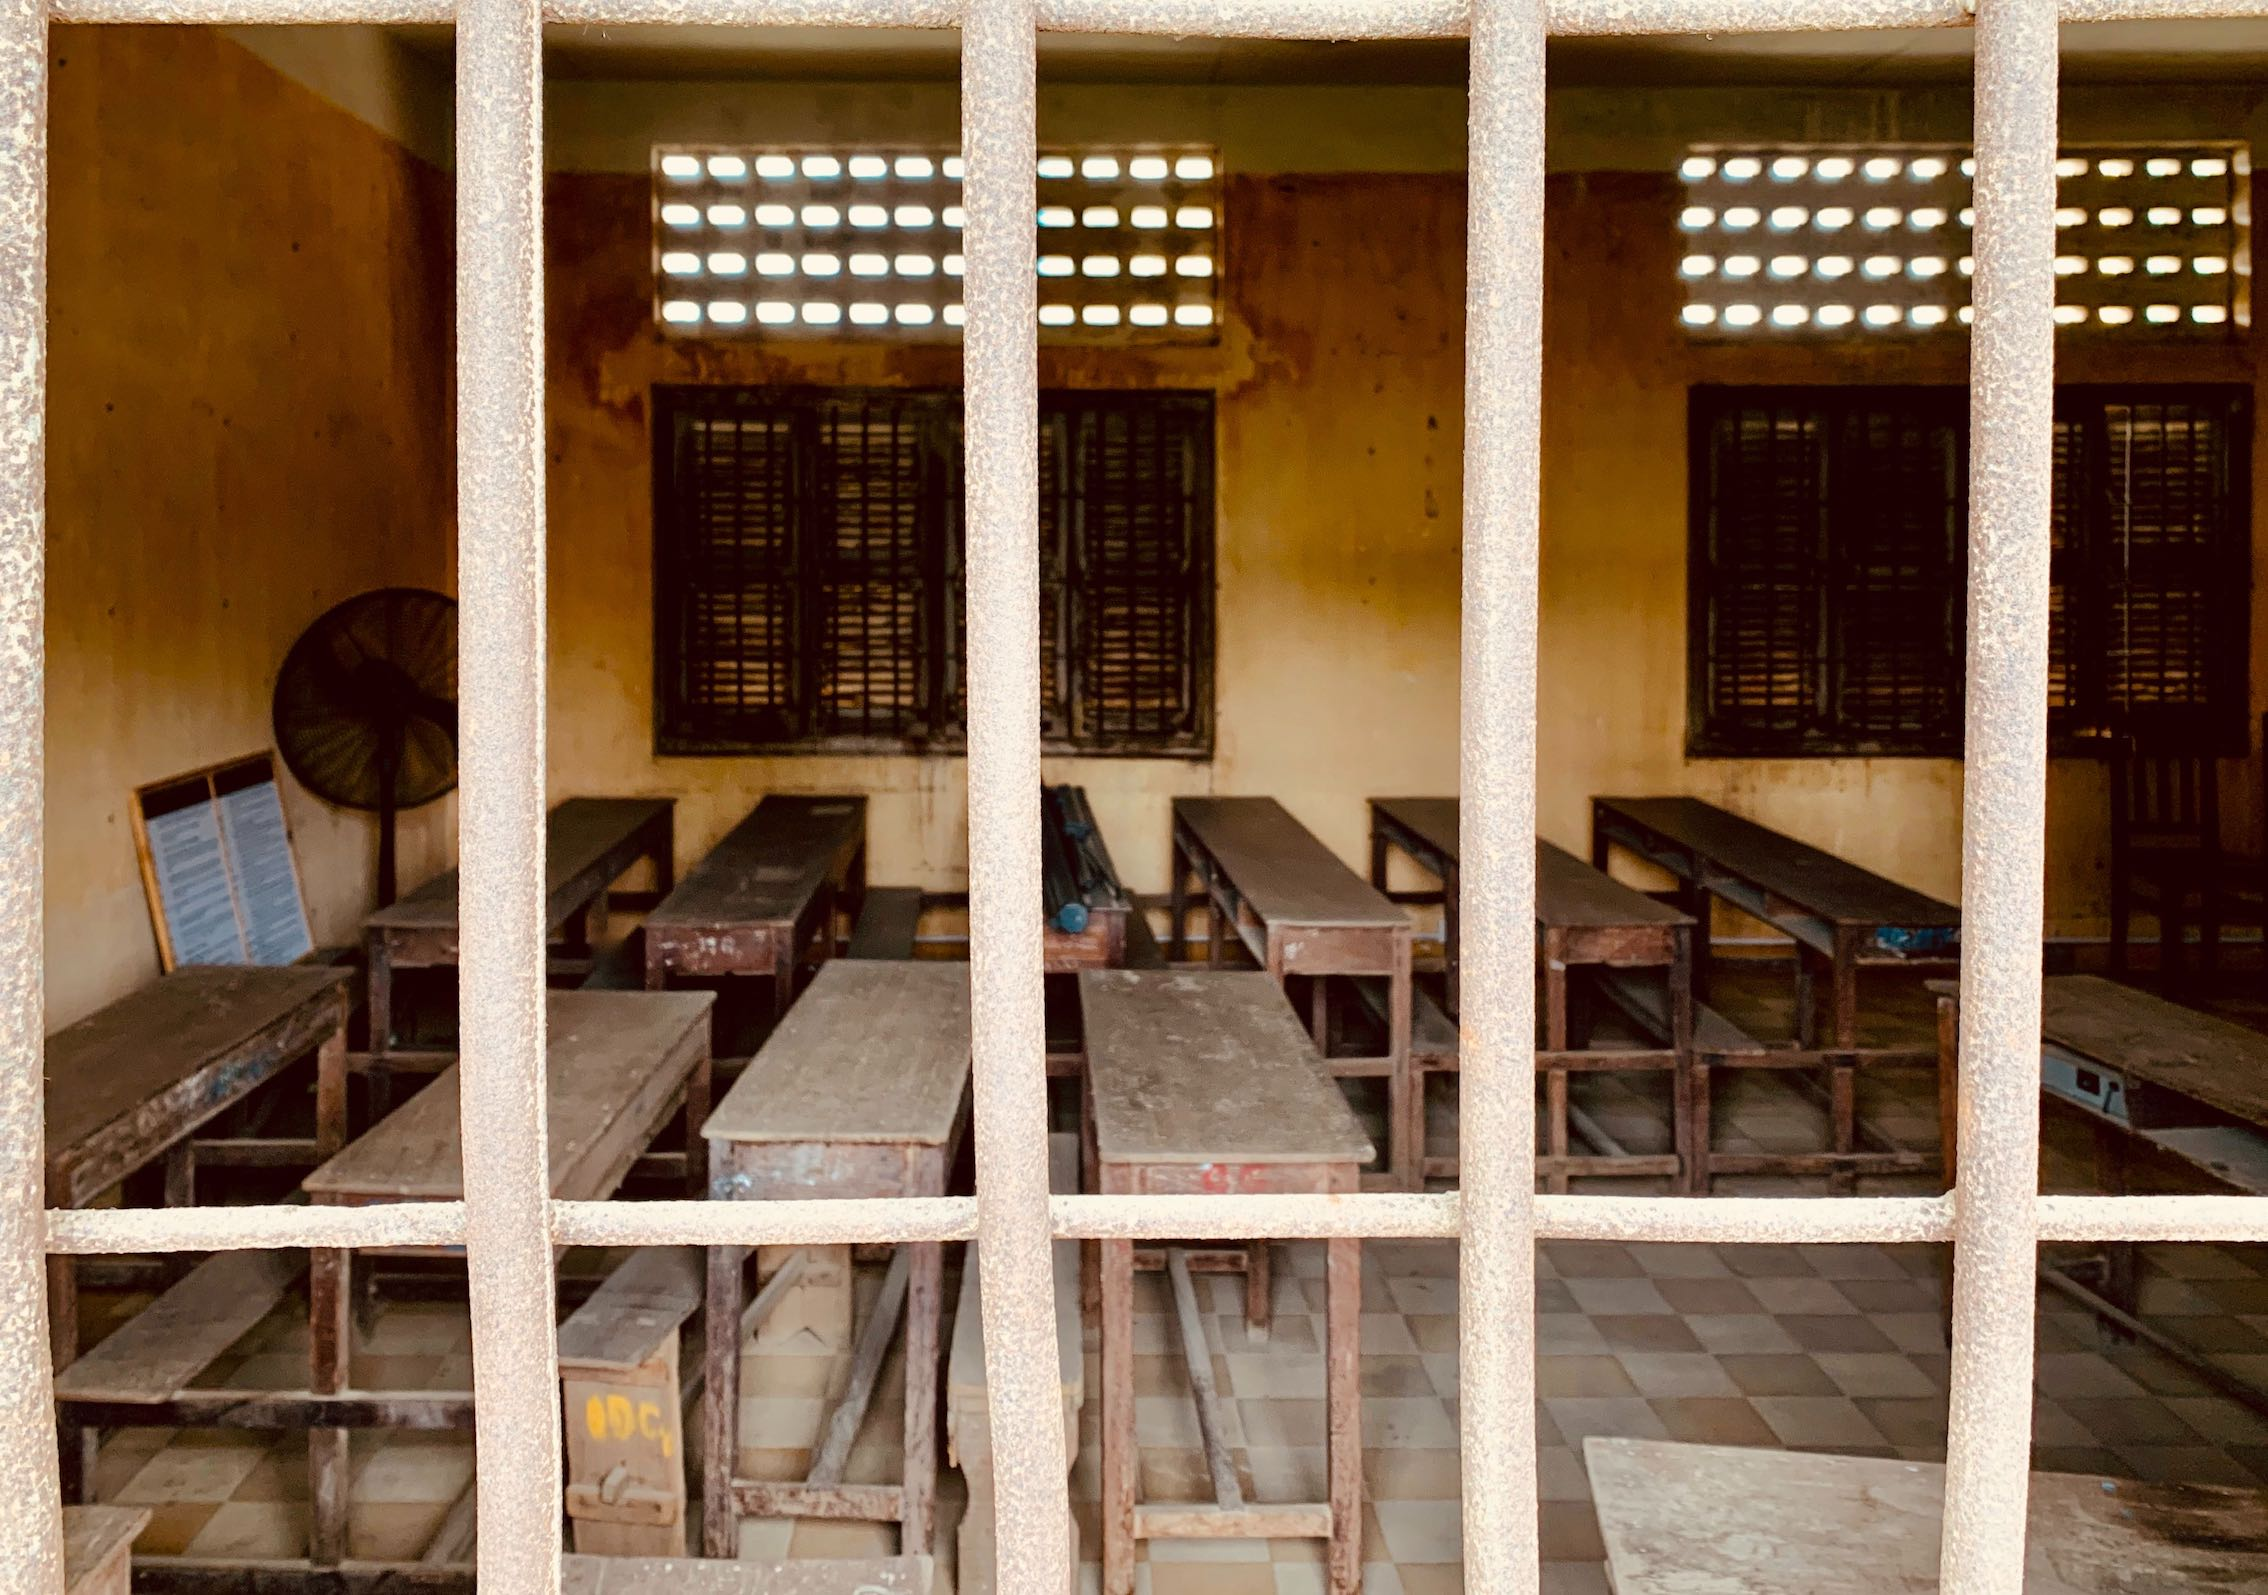 Former school classroom Tuol Sleng Genocide Museum